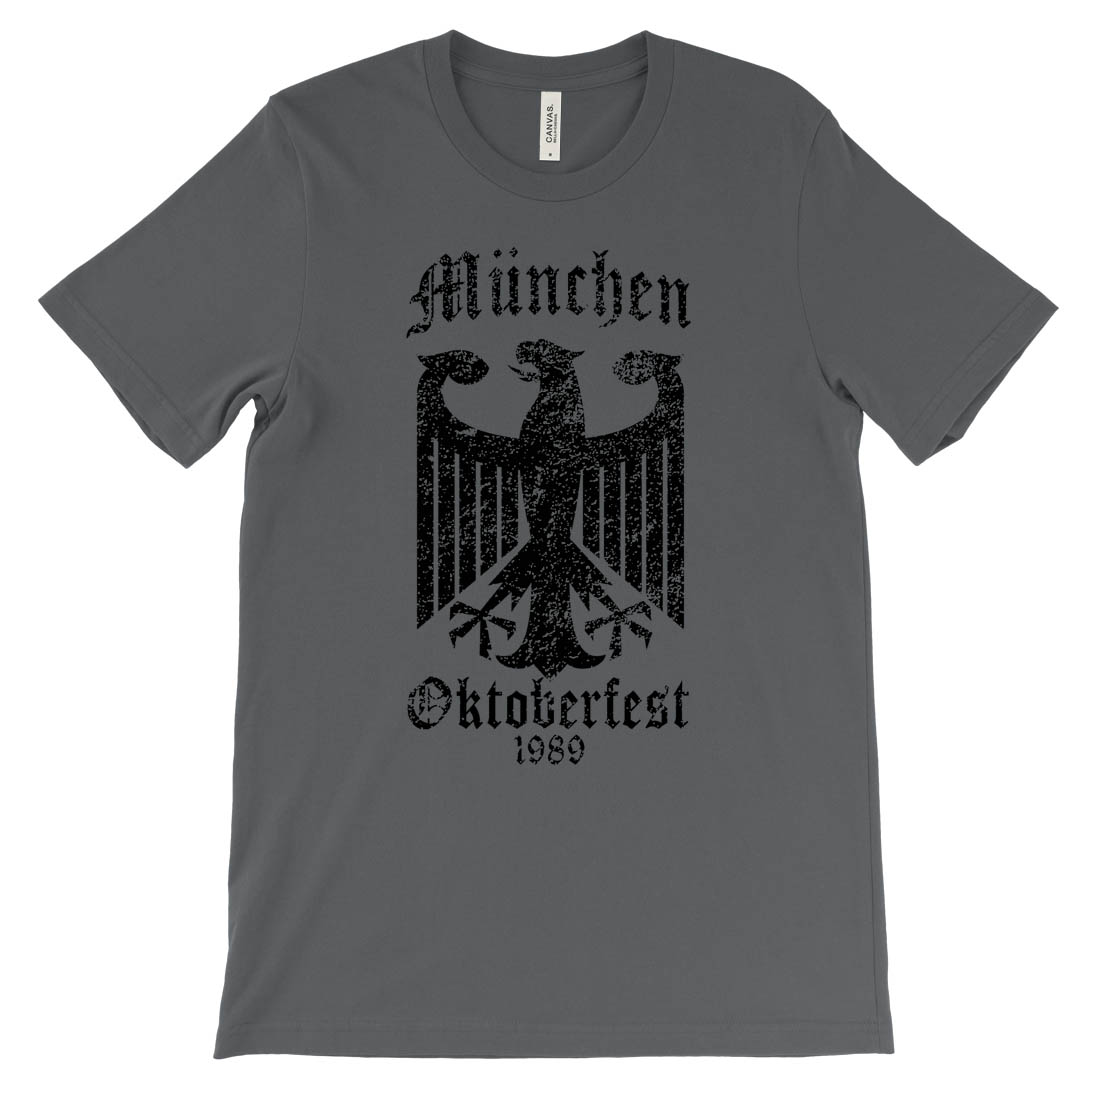 Vintage oktoberfest t shirt for Cheap t shirt printing next day delivery